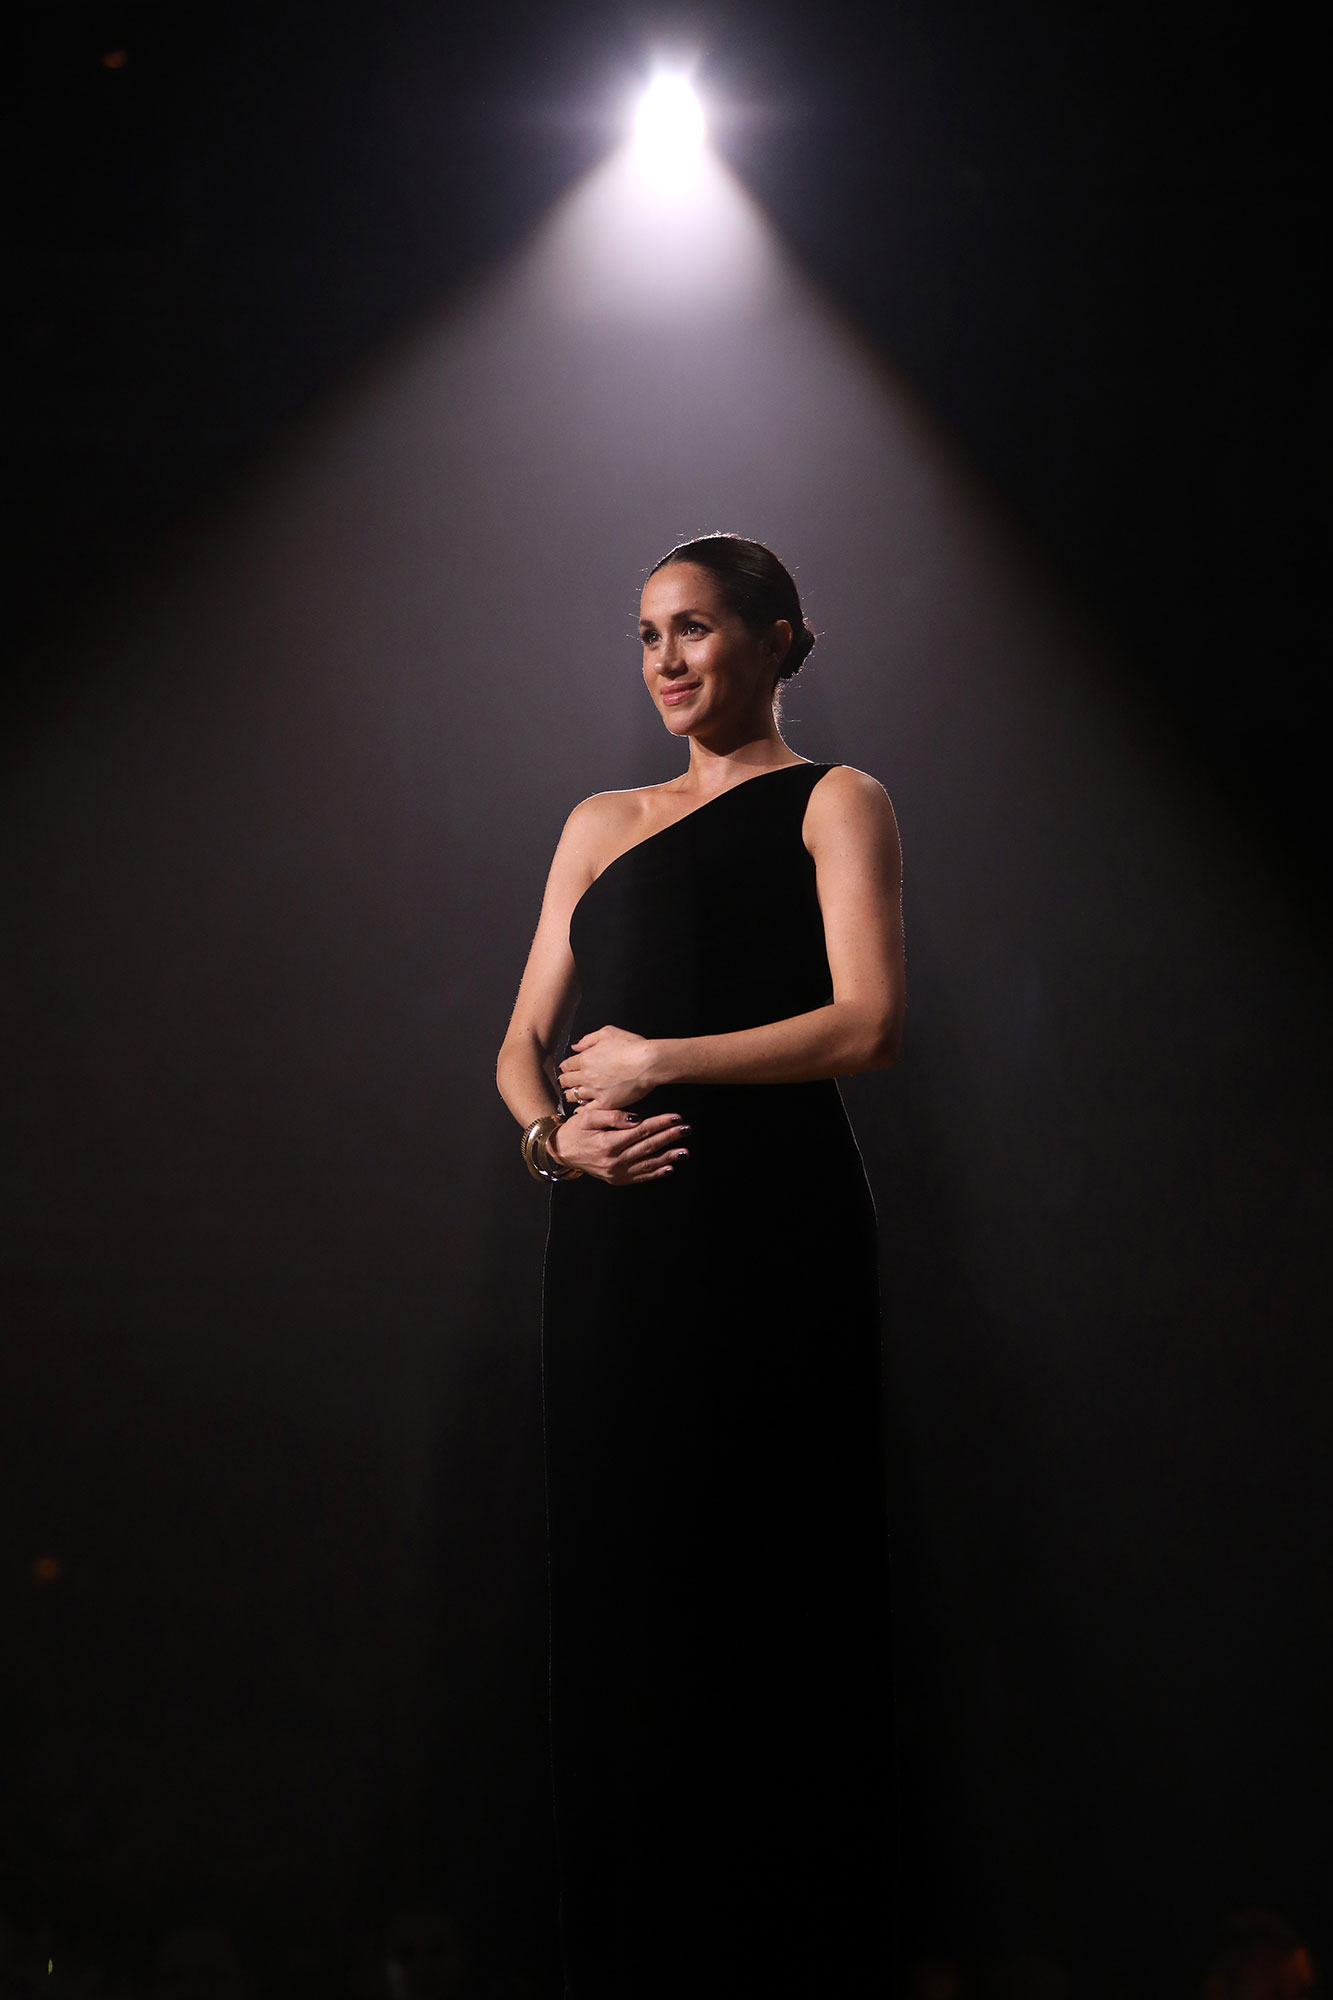 """<div class=""""meta image-caption""""><div class=""""origin-logo origin-image none""""><span>none</span></div><span class=""""caption-text"""">Meghan, Duchess of Sussex onstage during The Fashion Awards 2018 In Partnership With Swarovski at Royal Albert Hall on December 10, 2018 in London. (Tristan Fewings/BFC/Getty Images)</span></div>"""